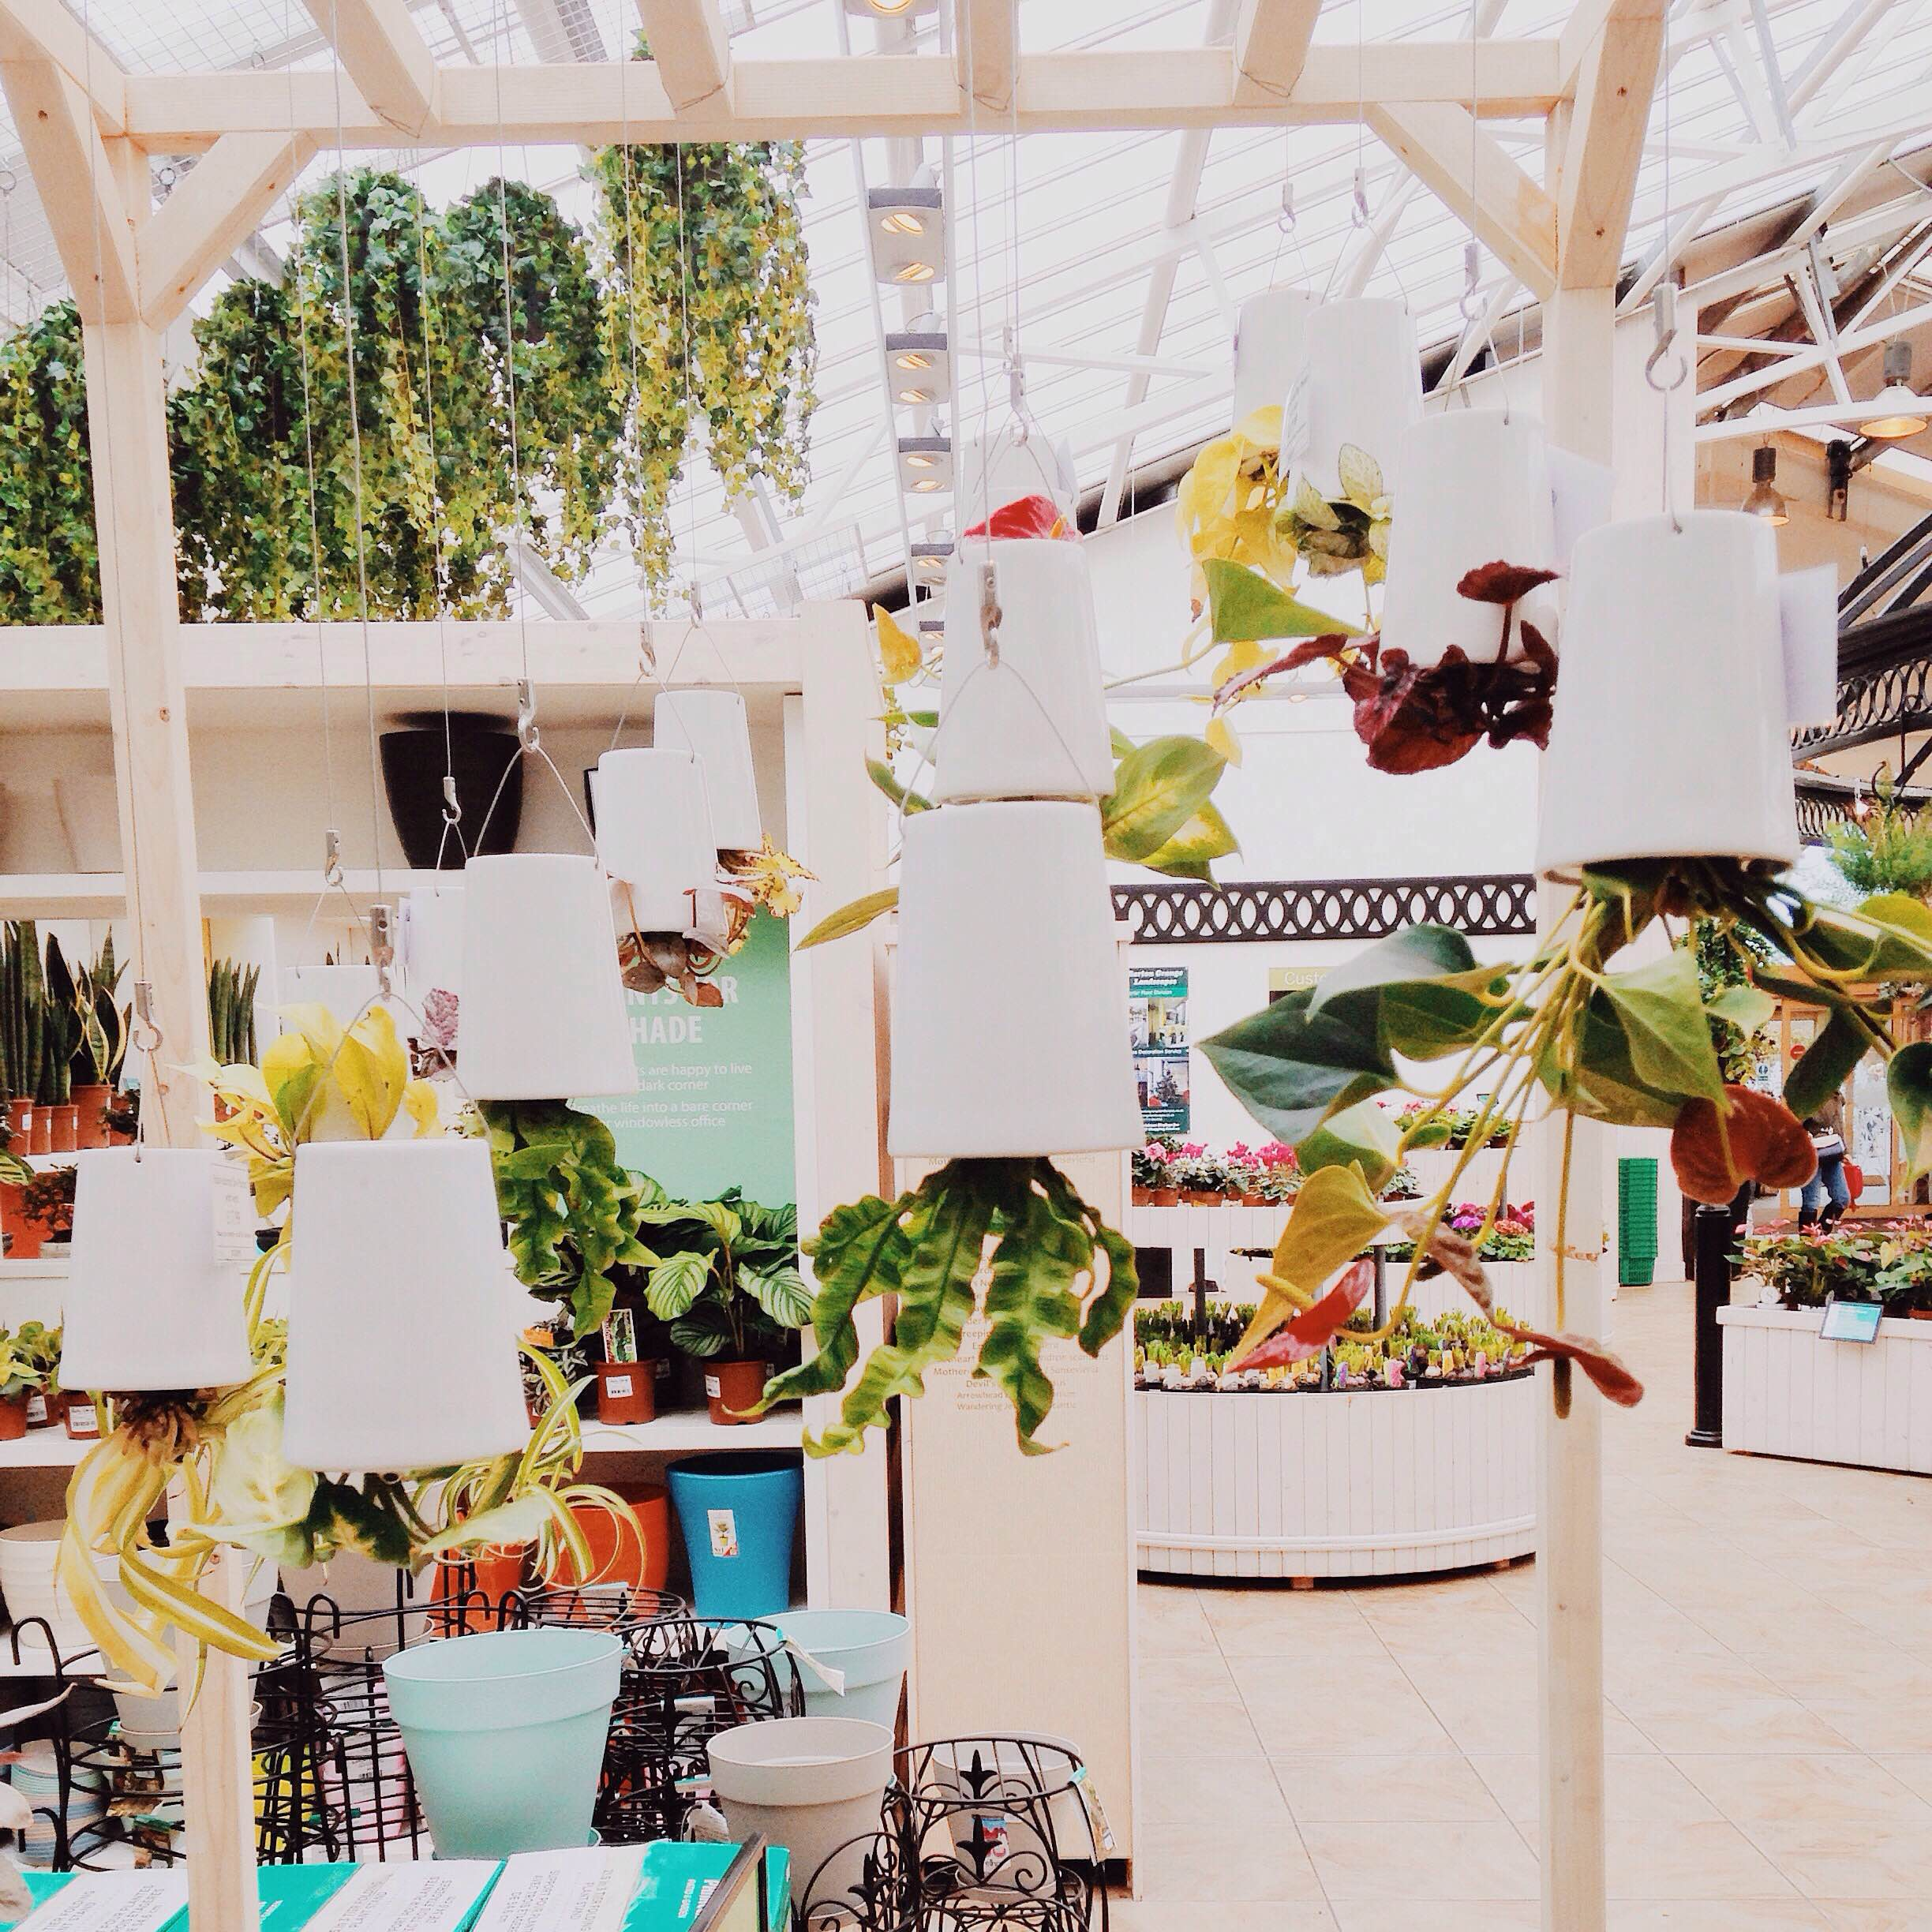 Upside down hanging plants at the garden centre